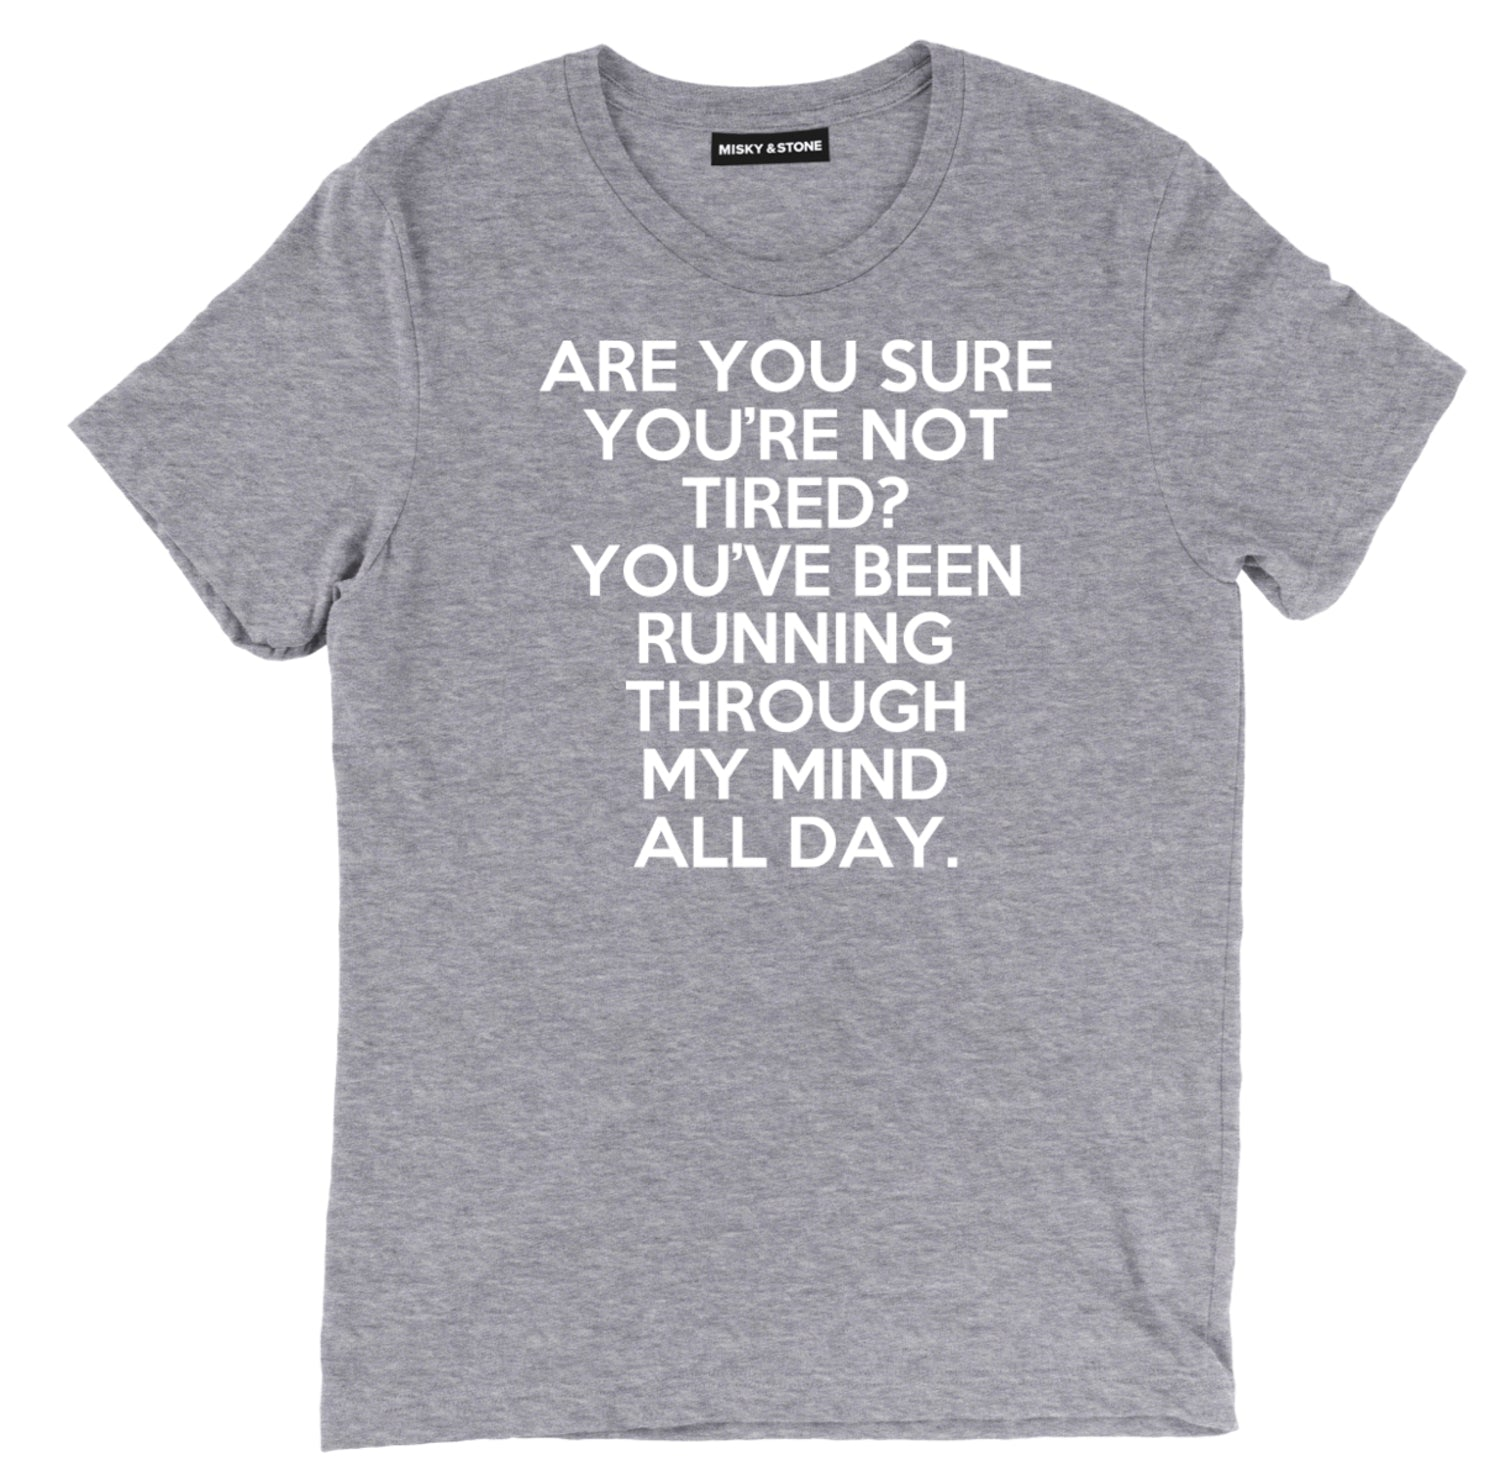 running through my mind sarcastic t shirts, sarcastic running through my mind shirts, sarcastic pick up line tee shirts, sarcastic tees, sarcastic t shirt sayings, sarcastic t shirts quotes, funny sarcastic t shirts,